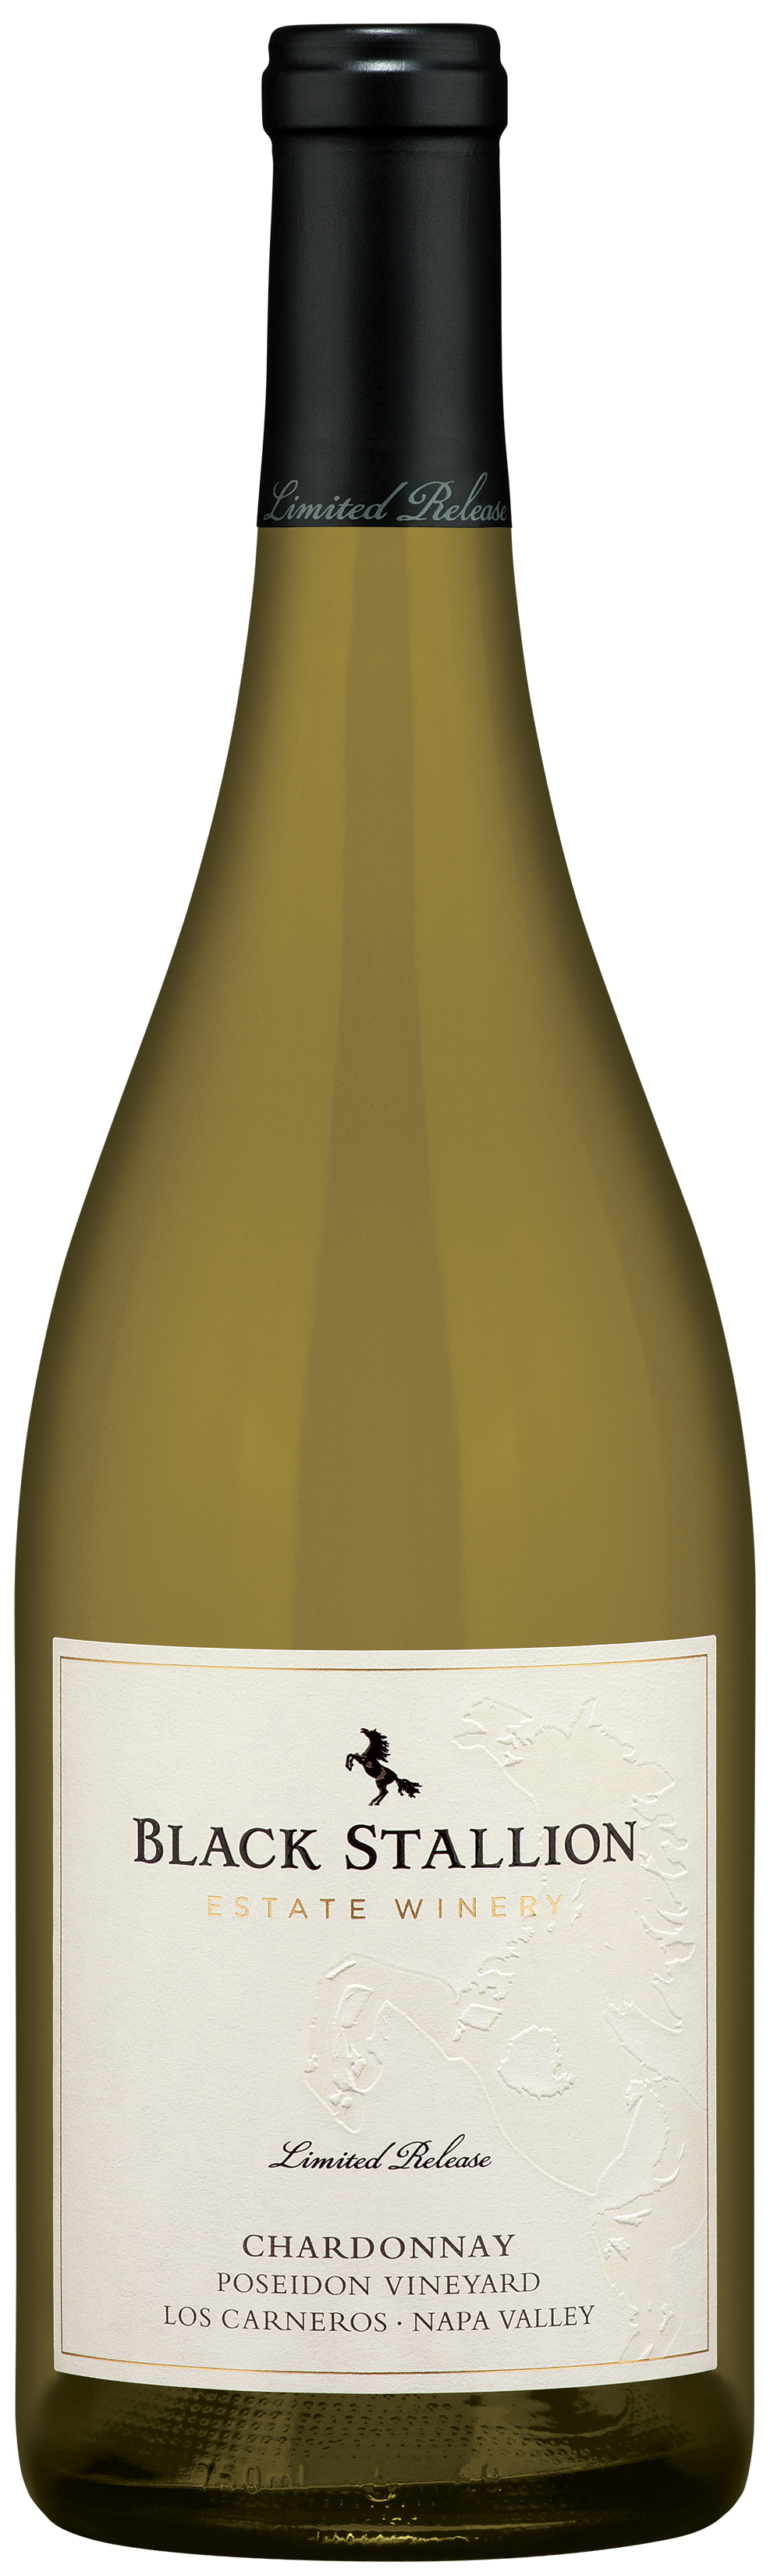 Product Image for 2018 Limited Release Poseidon Chardonnay